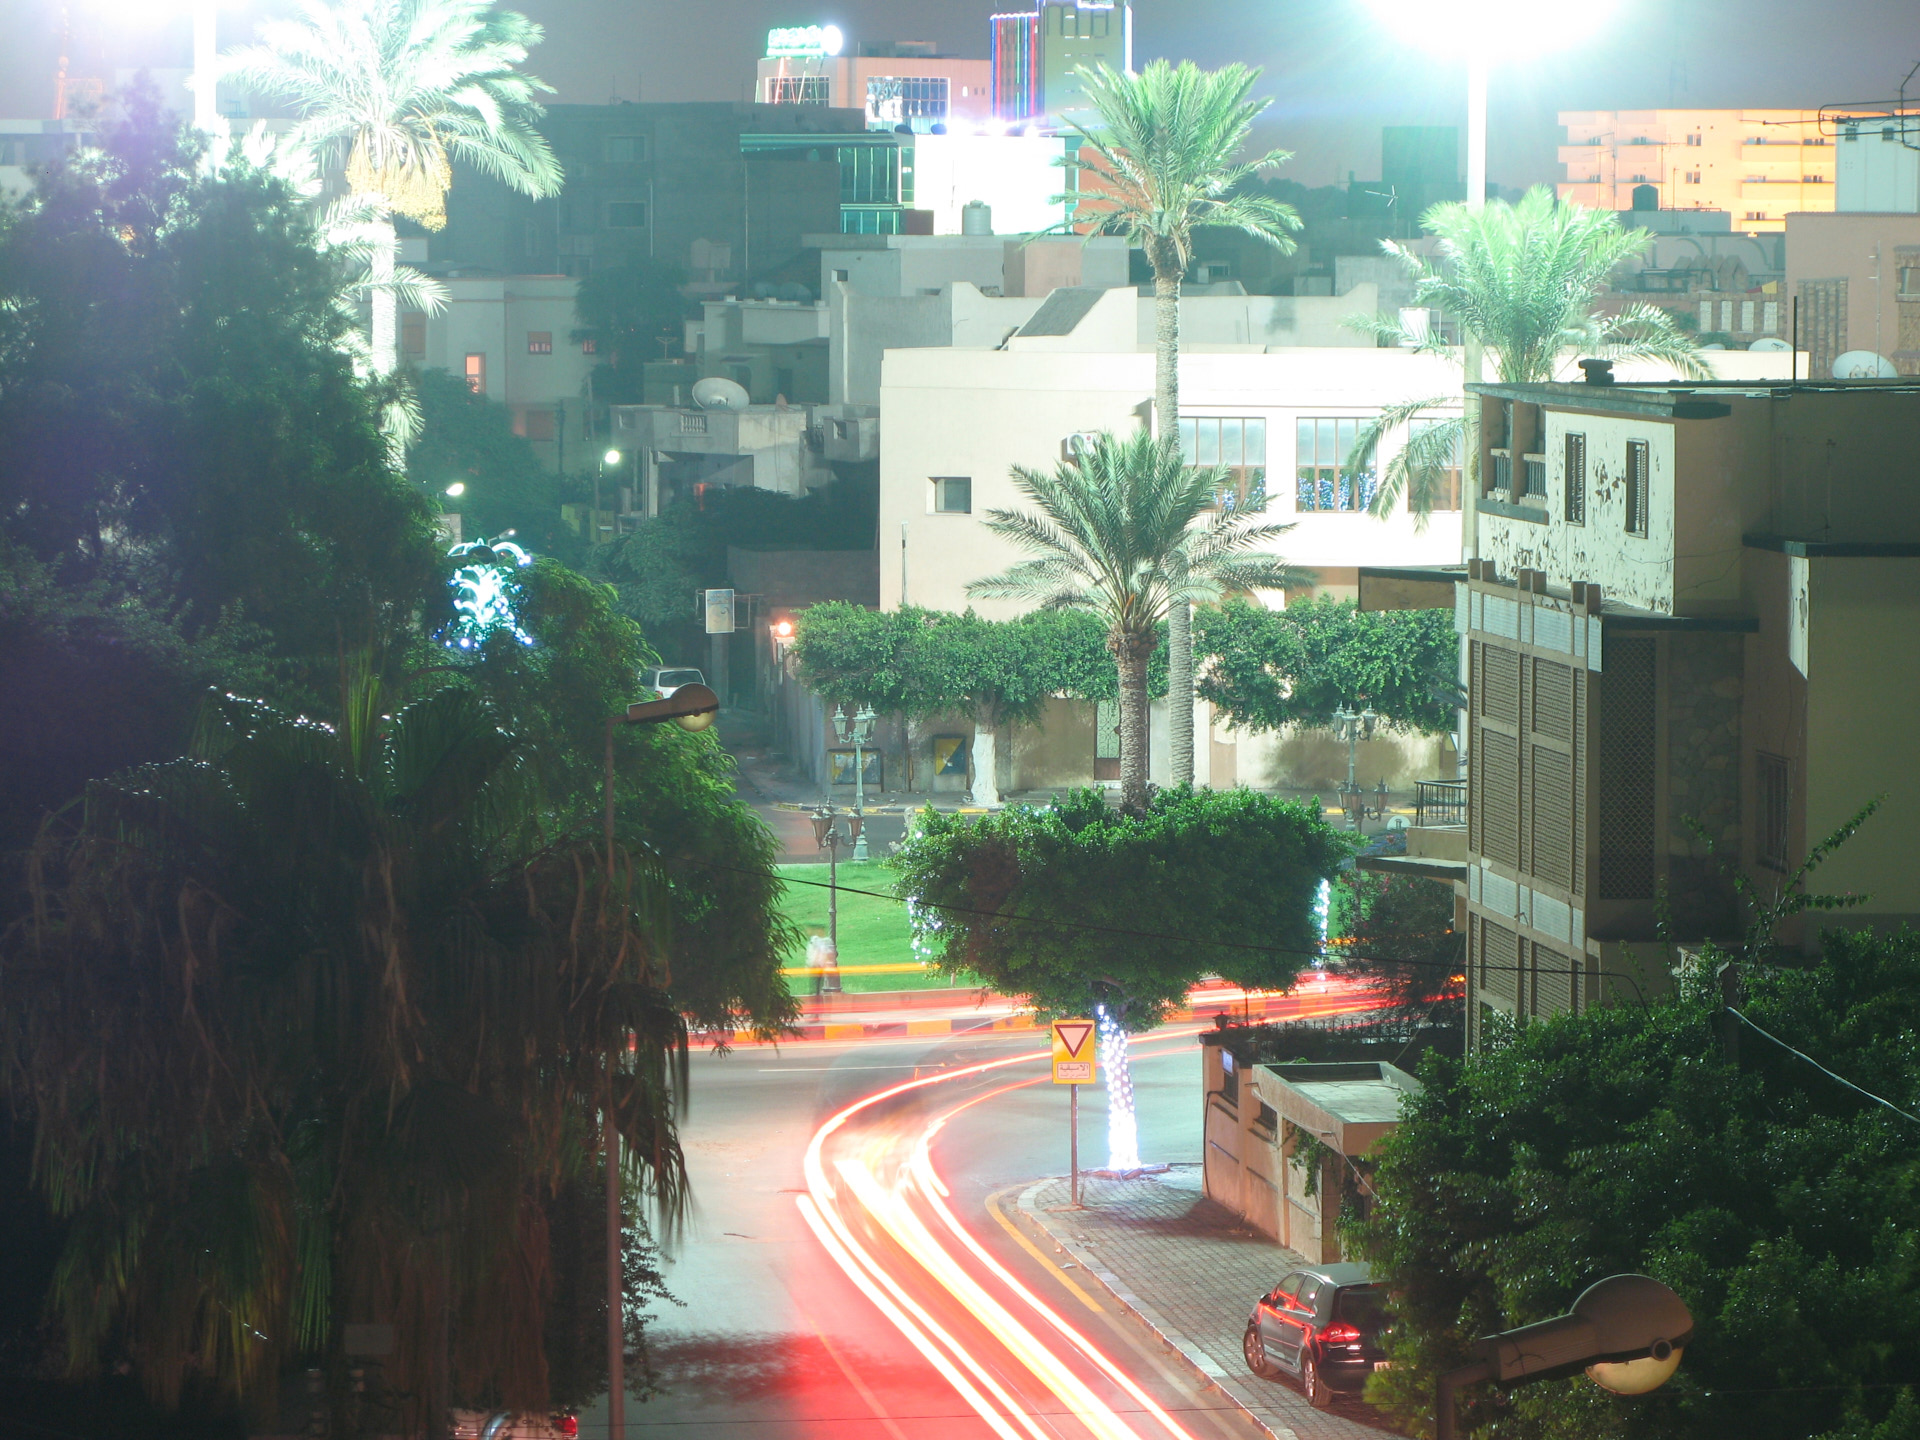 View to roundabout, Kahled Bin Walid Street. 2009, C-Type print.